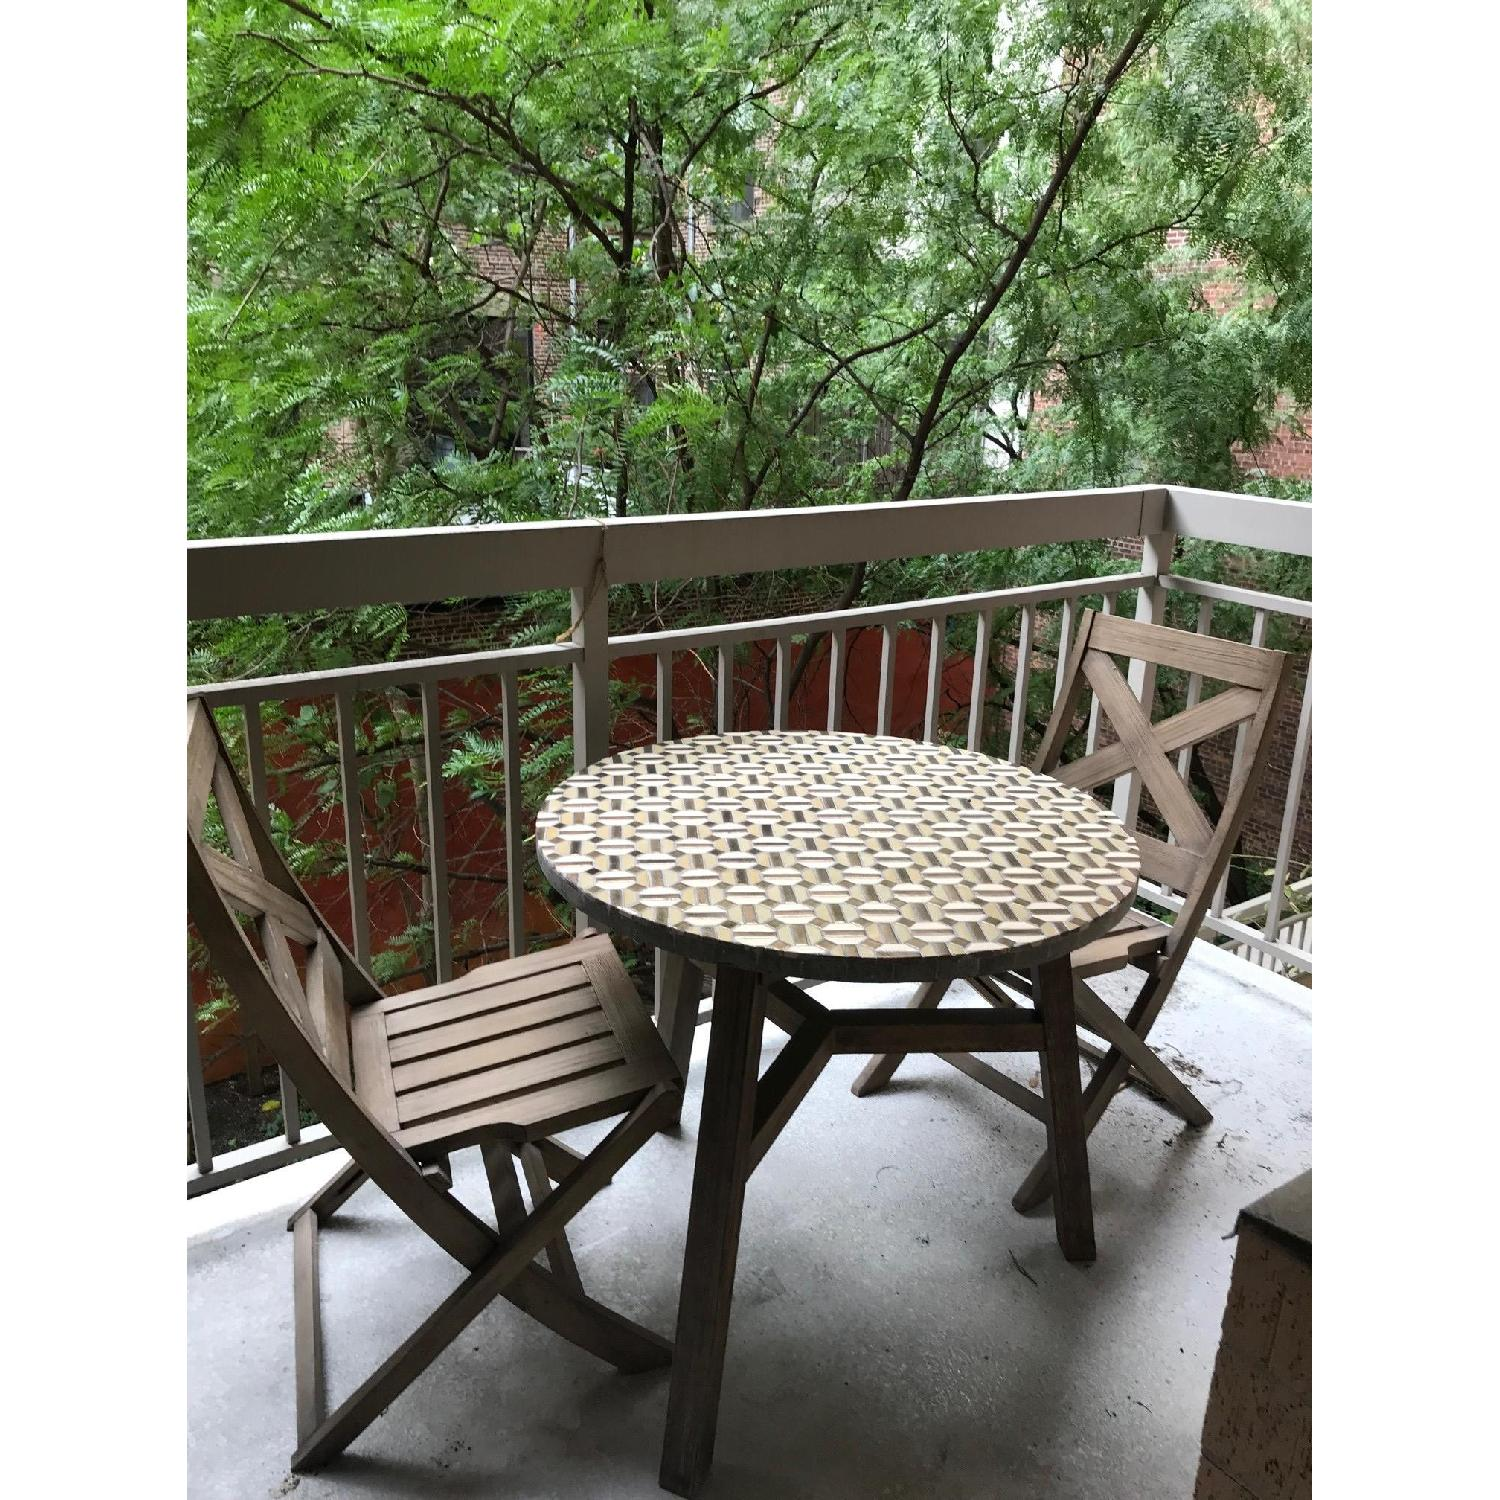 West Elm Outdoor Mosaic Tile Bistro Table w/ 2 Chairs ...  sc 1 st  AptDeco & West Elm Outdoor Mosaic Tile Bistro Table w/ 2 Chairs - AptDeco